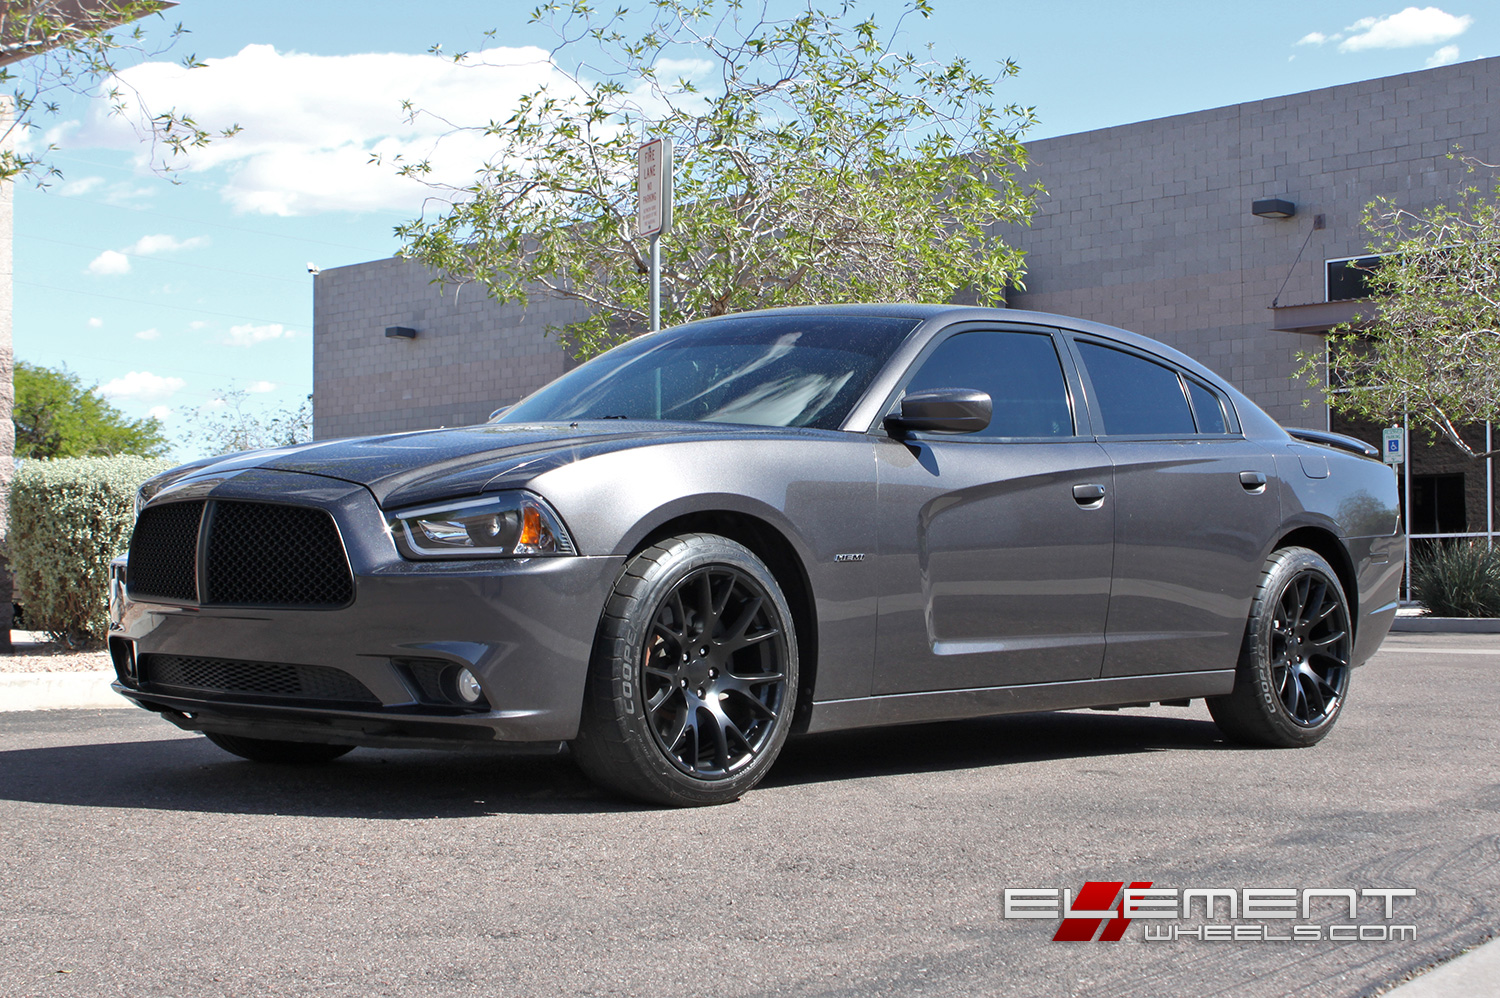 20 inch cat Replica Wheels on 2013 Dodge Charger RT w/ Specs ...